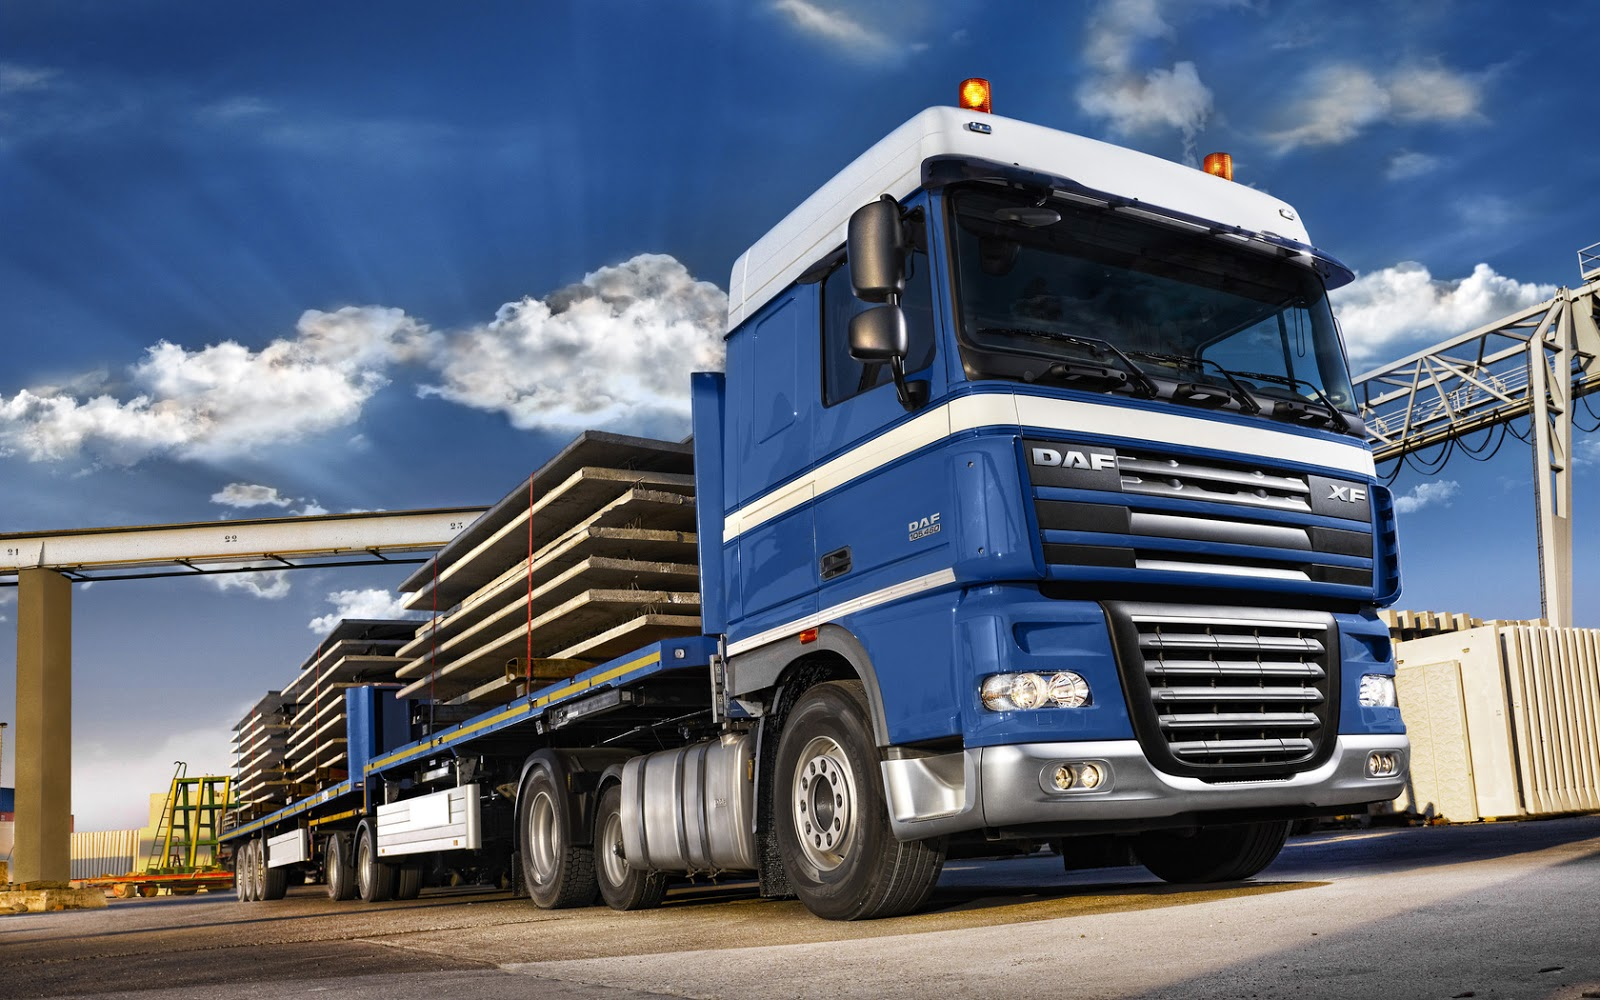 HD Car Wallpapers: Daf Trucks In UK HD Wallpapers